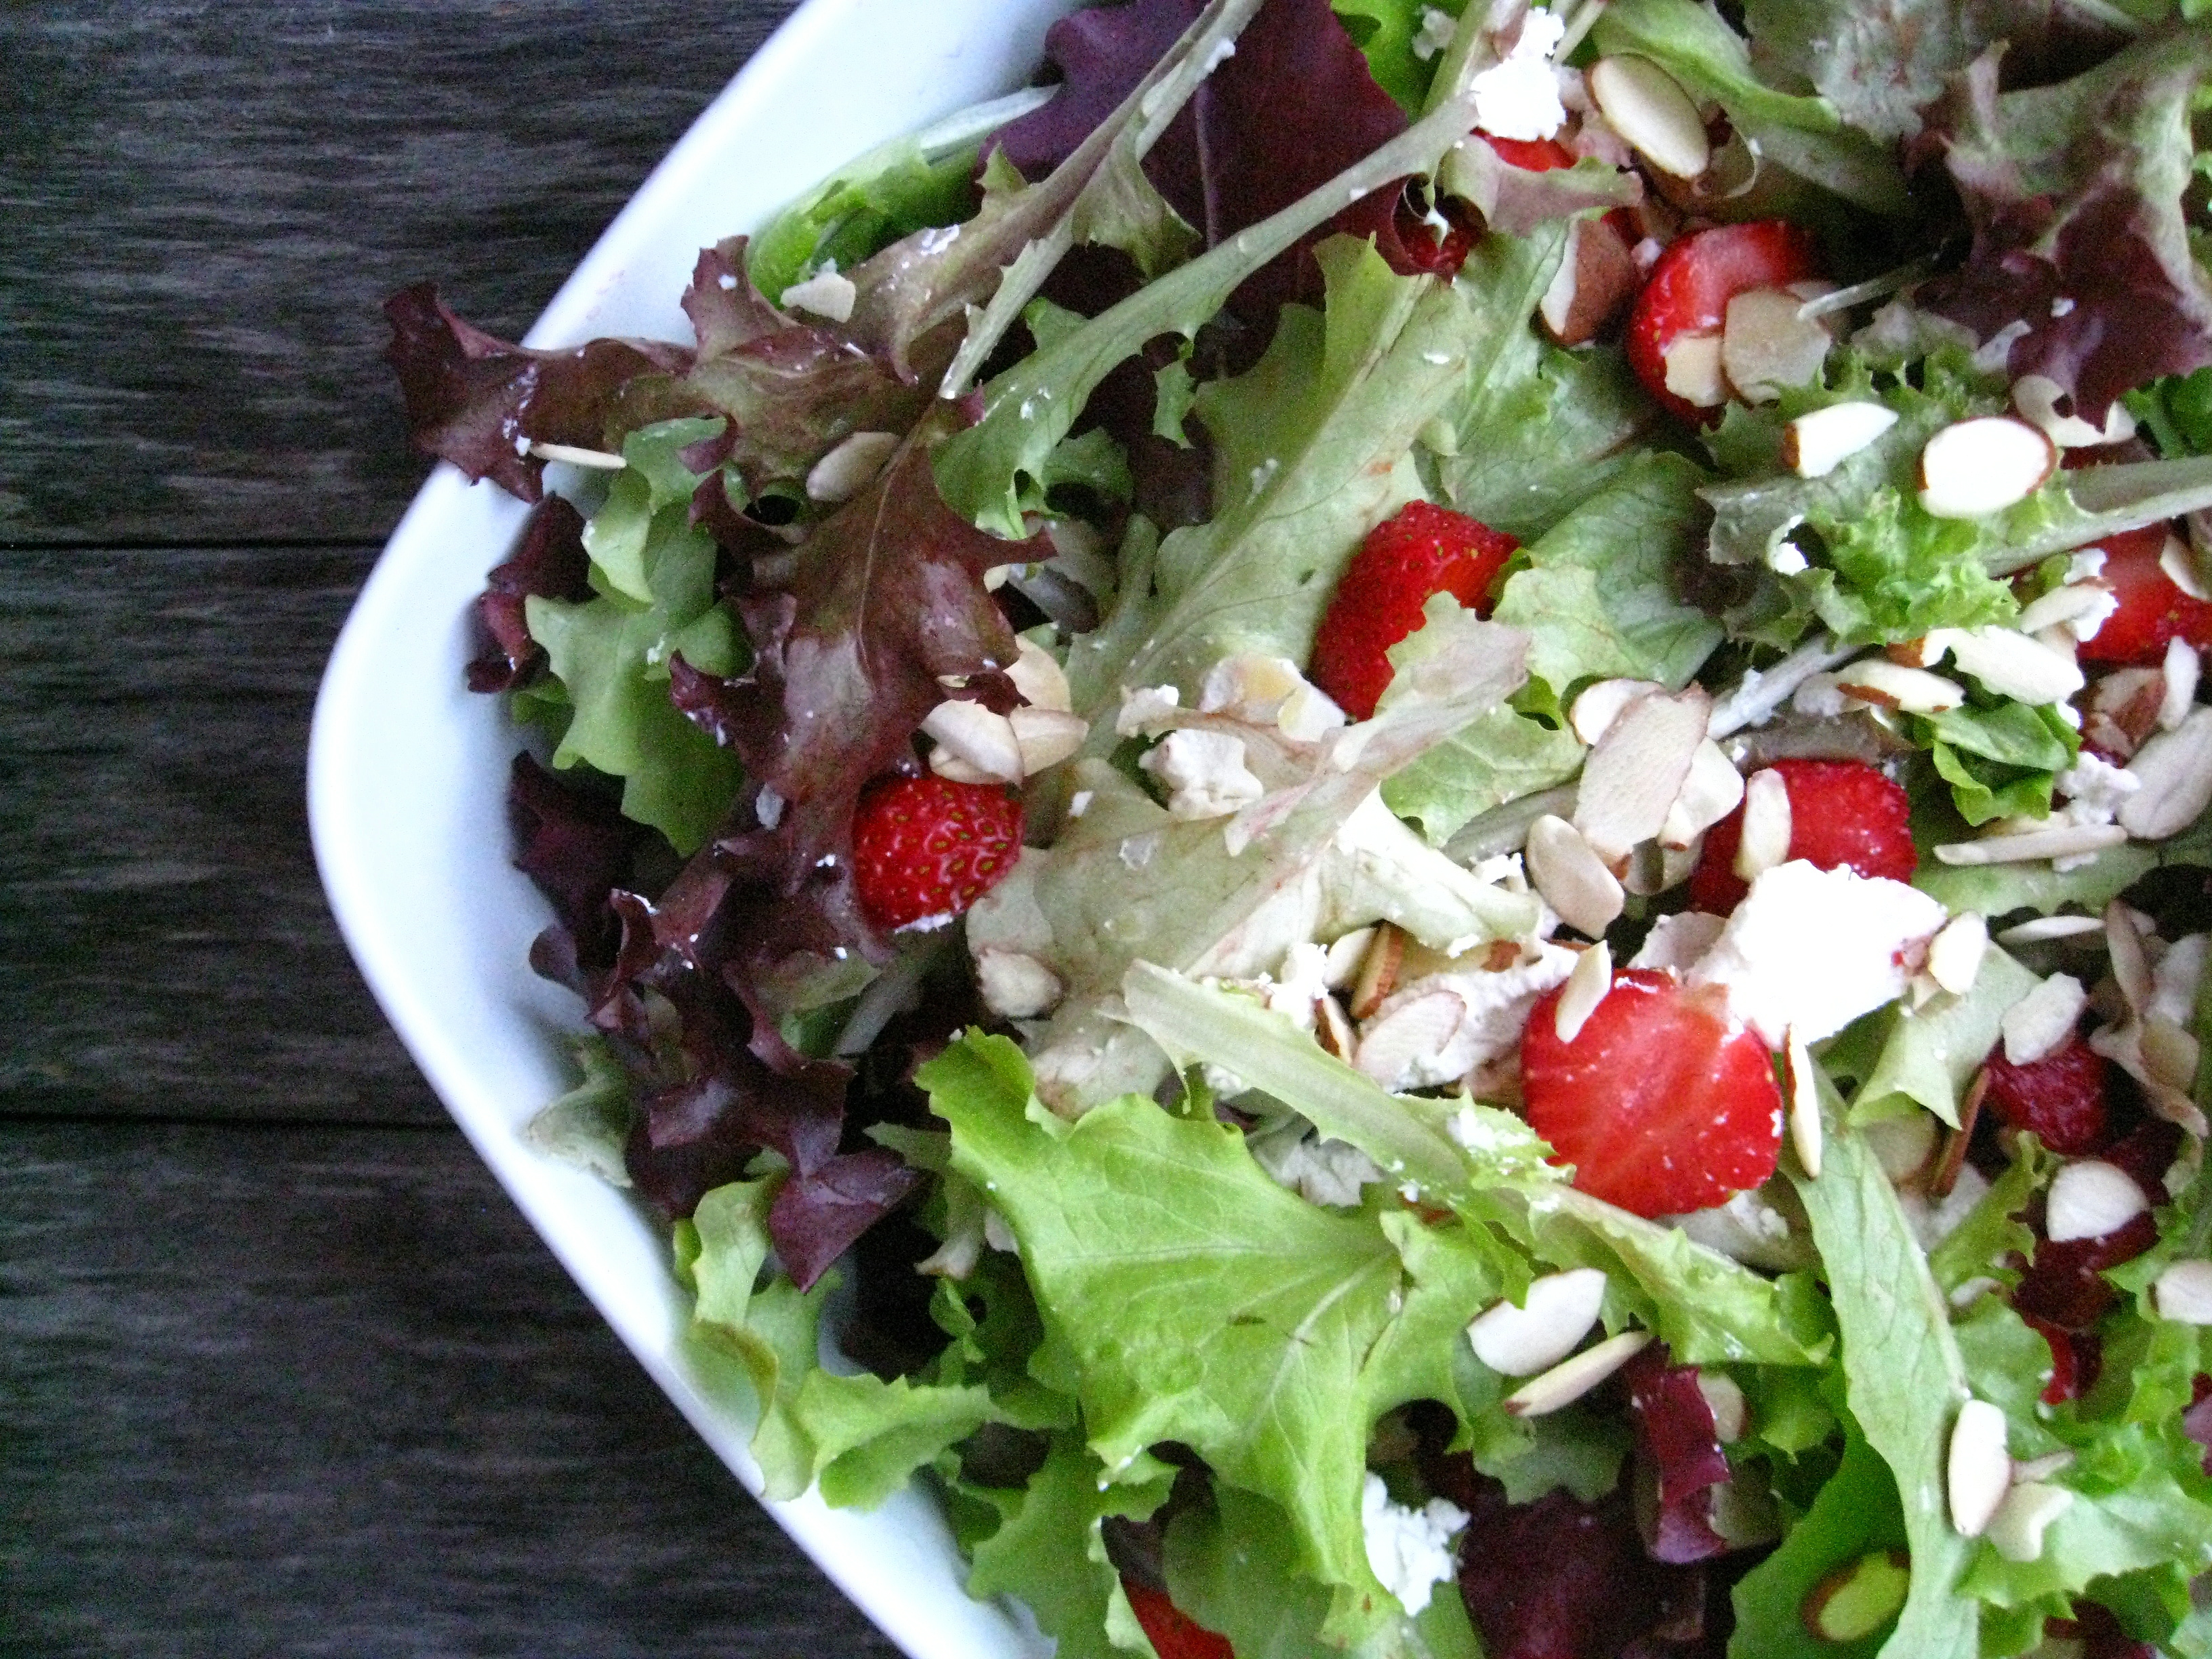 Strawberry and Goat Cheese Salad with Balsamic Vinaigrette ...